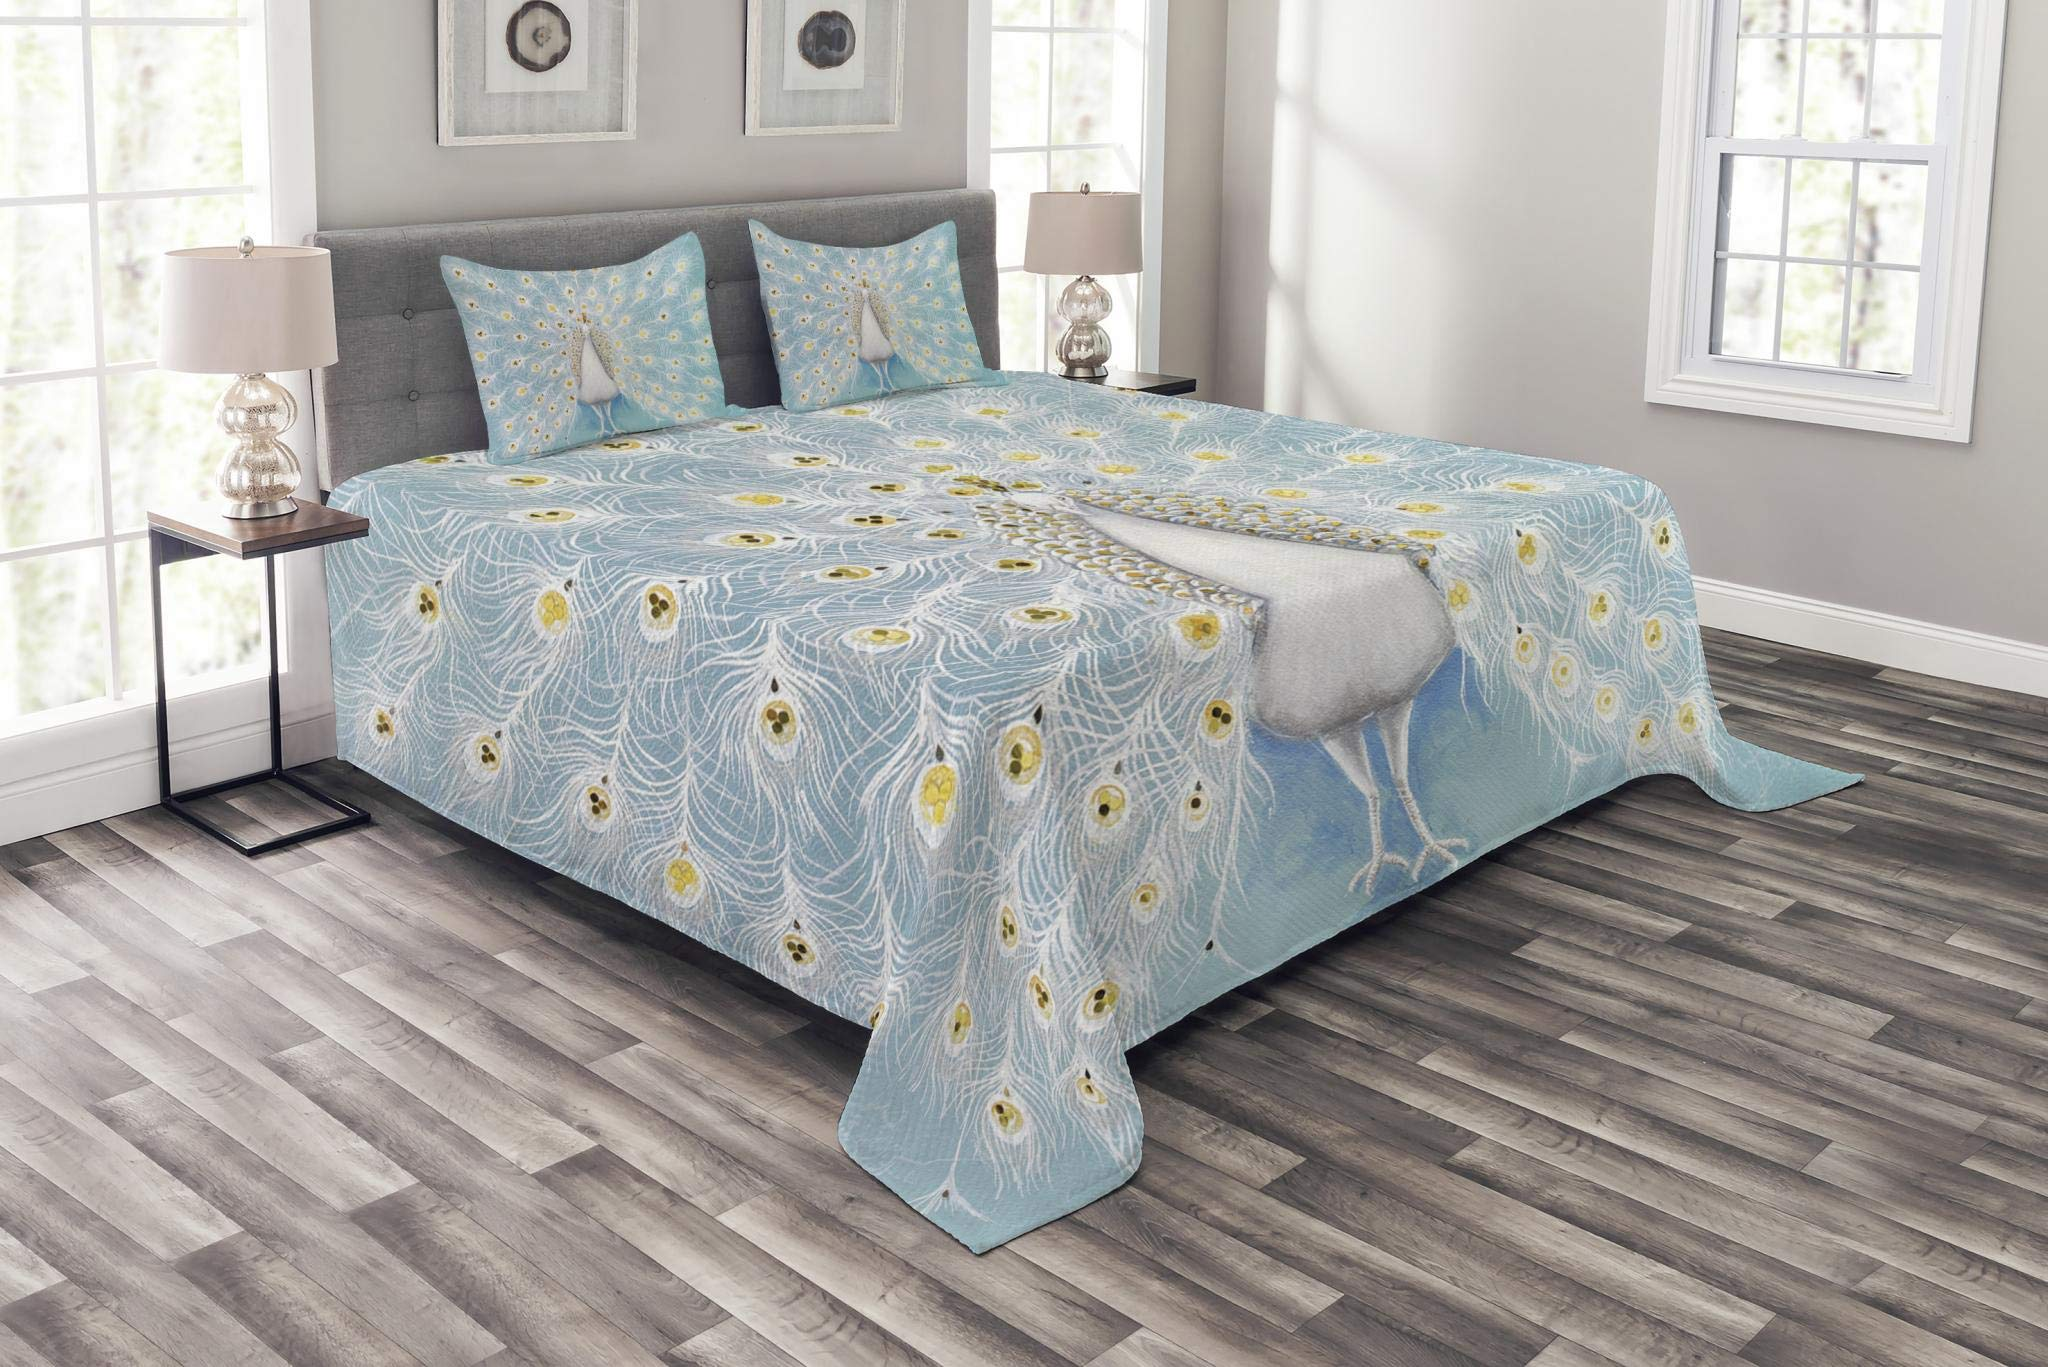 Ambesonne Peacock Bedspread Set Queen Size, Peacock Pattern on The Wall Nature Colorful Stylish Ornate Artwork Print, Decorative Quilted 3 Piece Coverlet Set with 2 Pillow Shams, Yellow Pale Blue